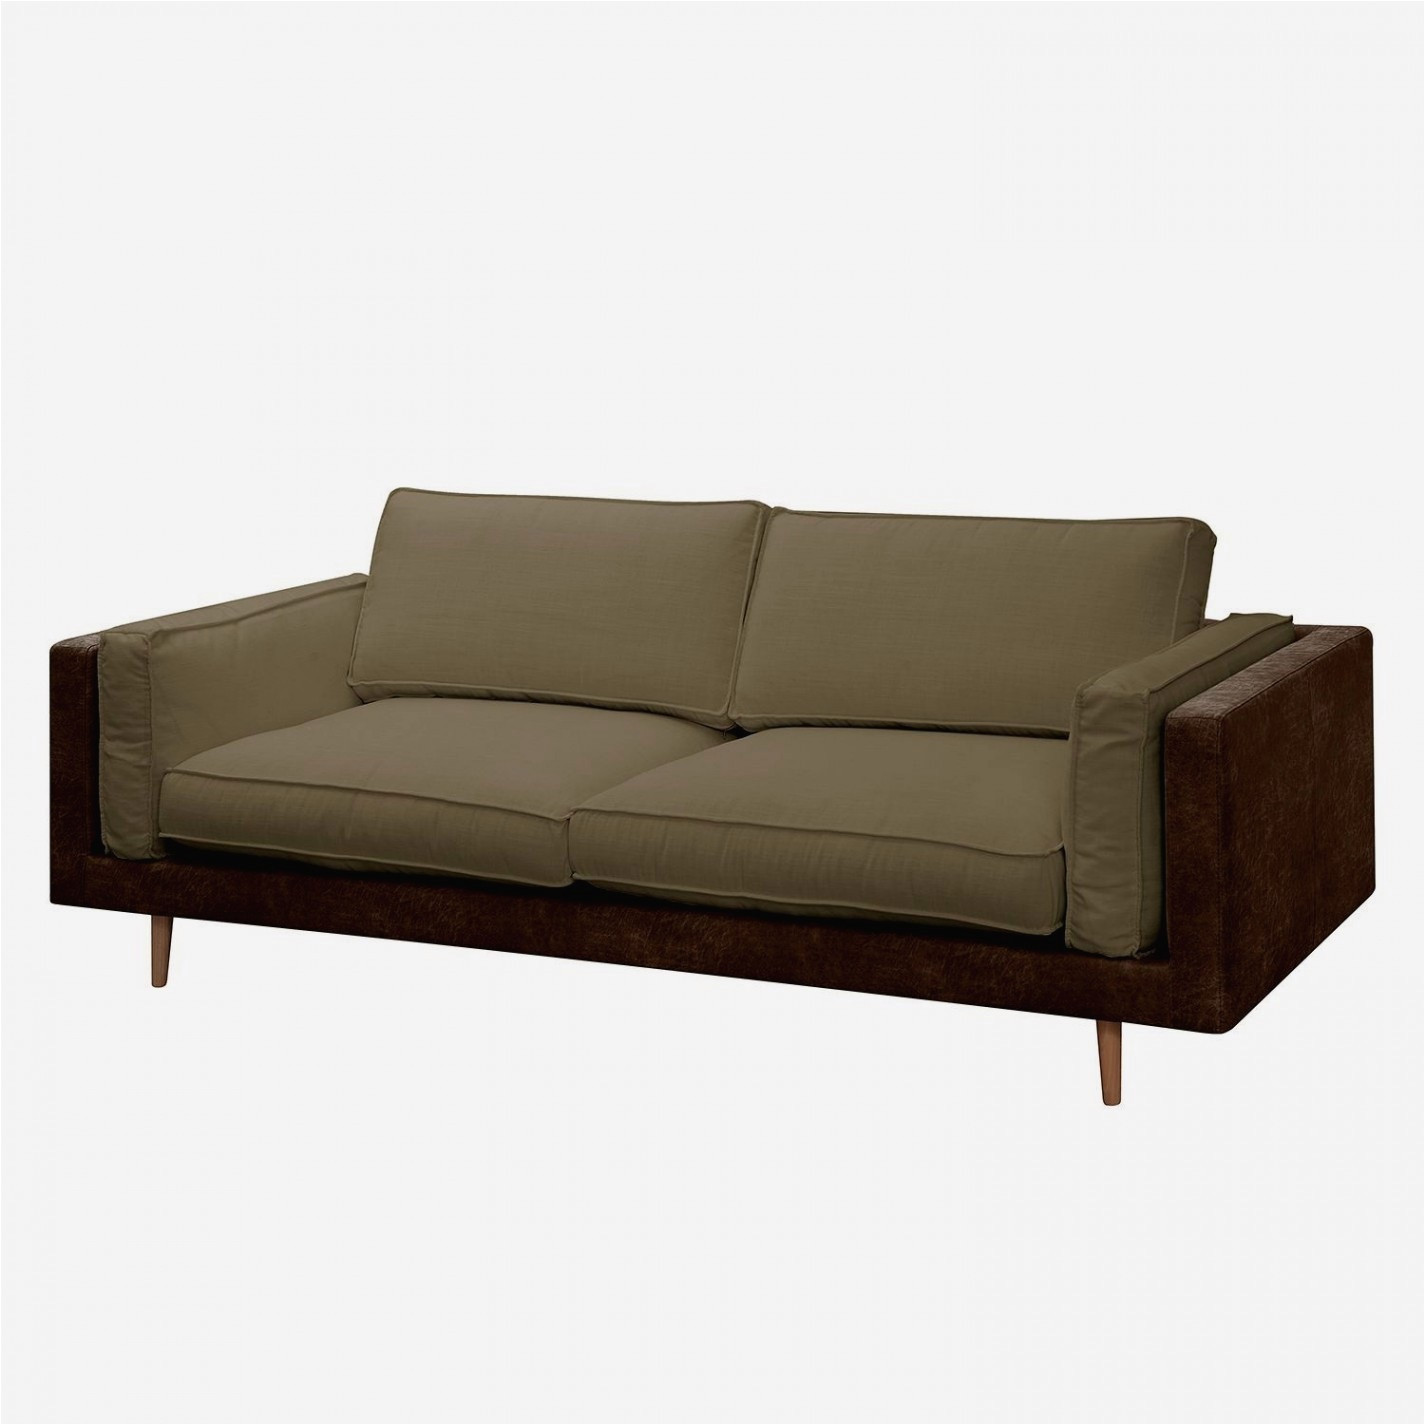 Sofa Dreier Ikea Futon Mattress Sizes Chart Adinaporter